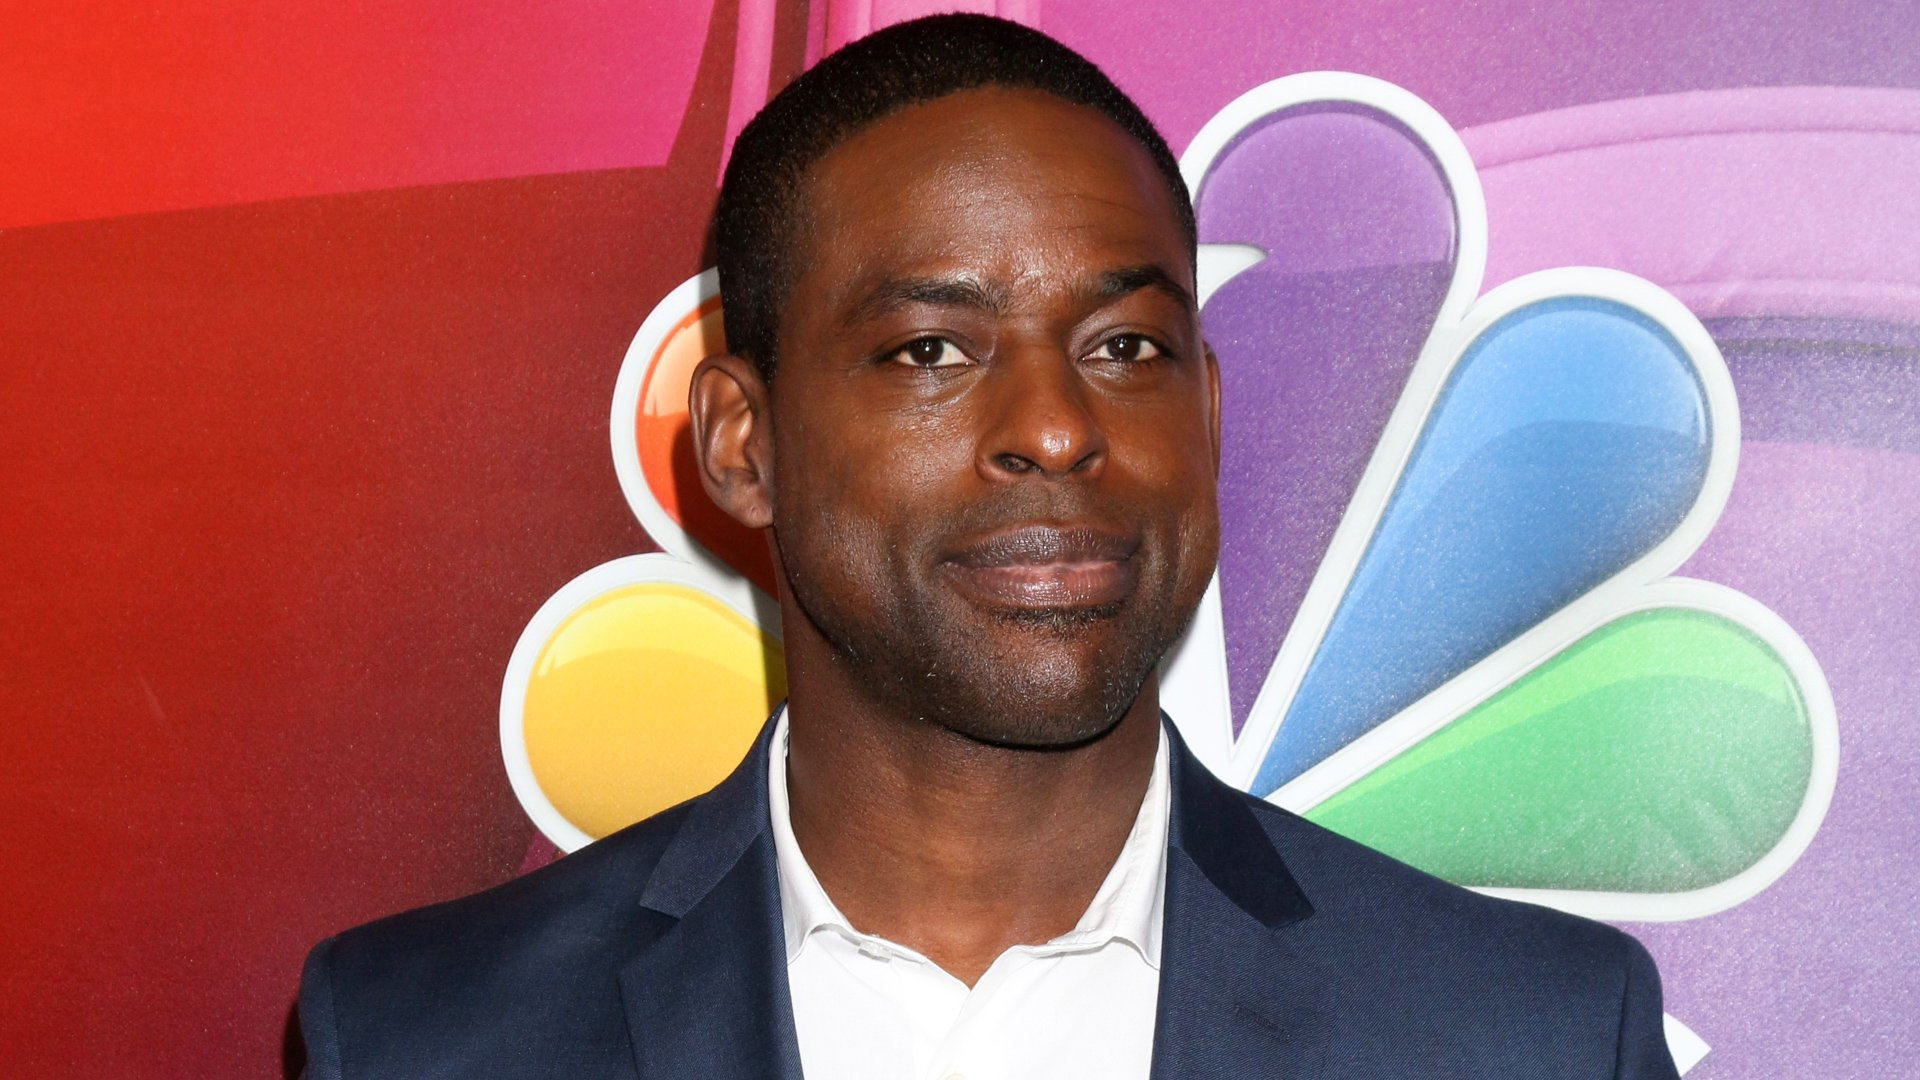 How Rich Is Sterling K. Brown as He Prepares for the Emmys?